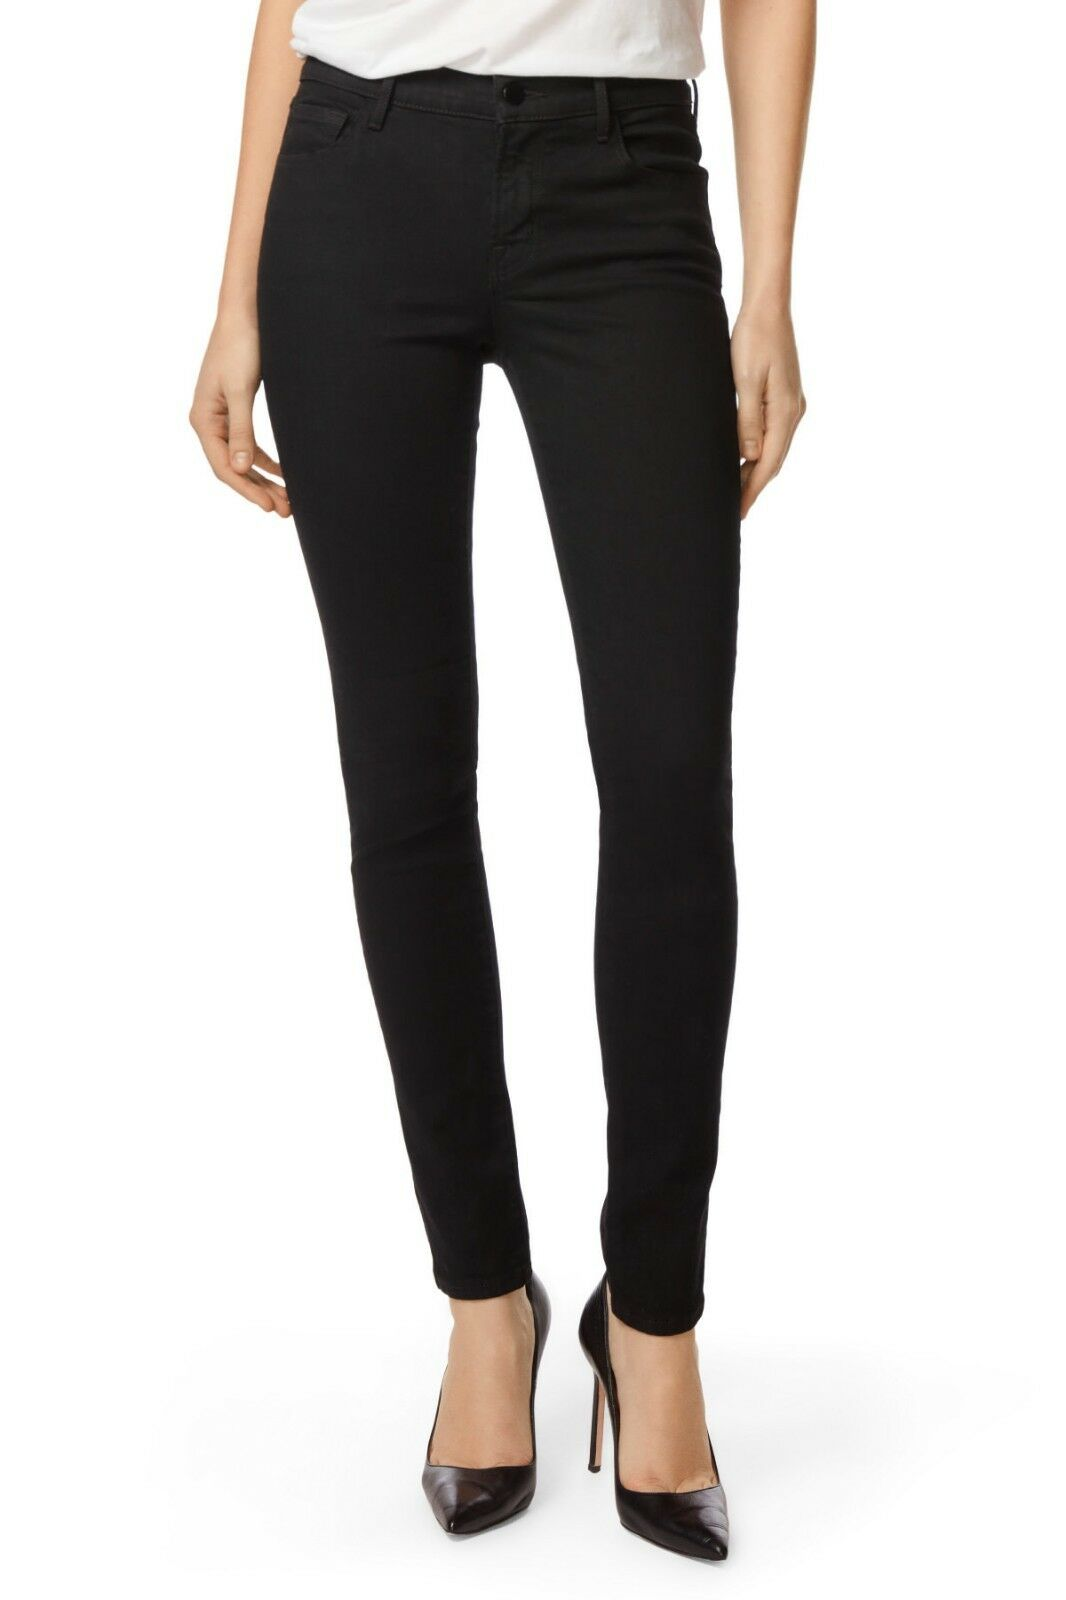 J Brand Womens Super Skinny Jeans in Drizzle Drizzle 29